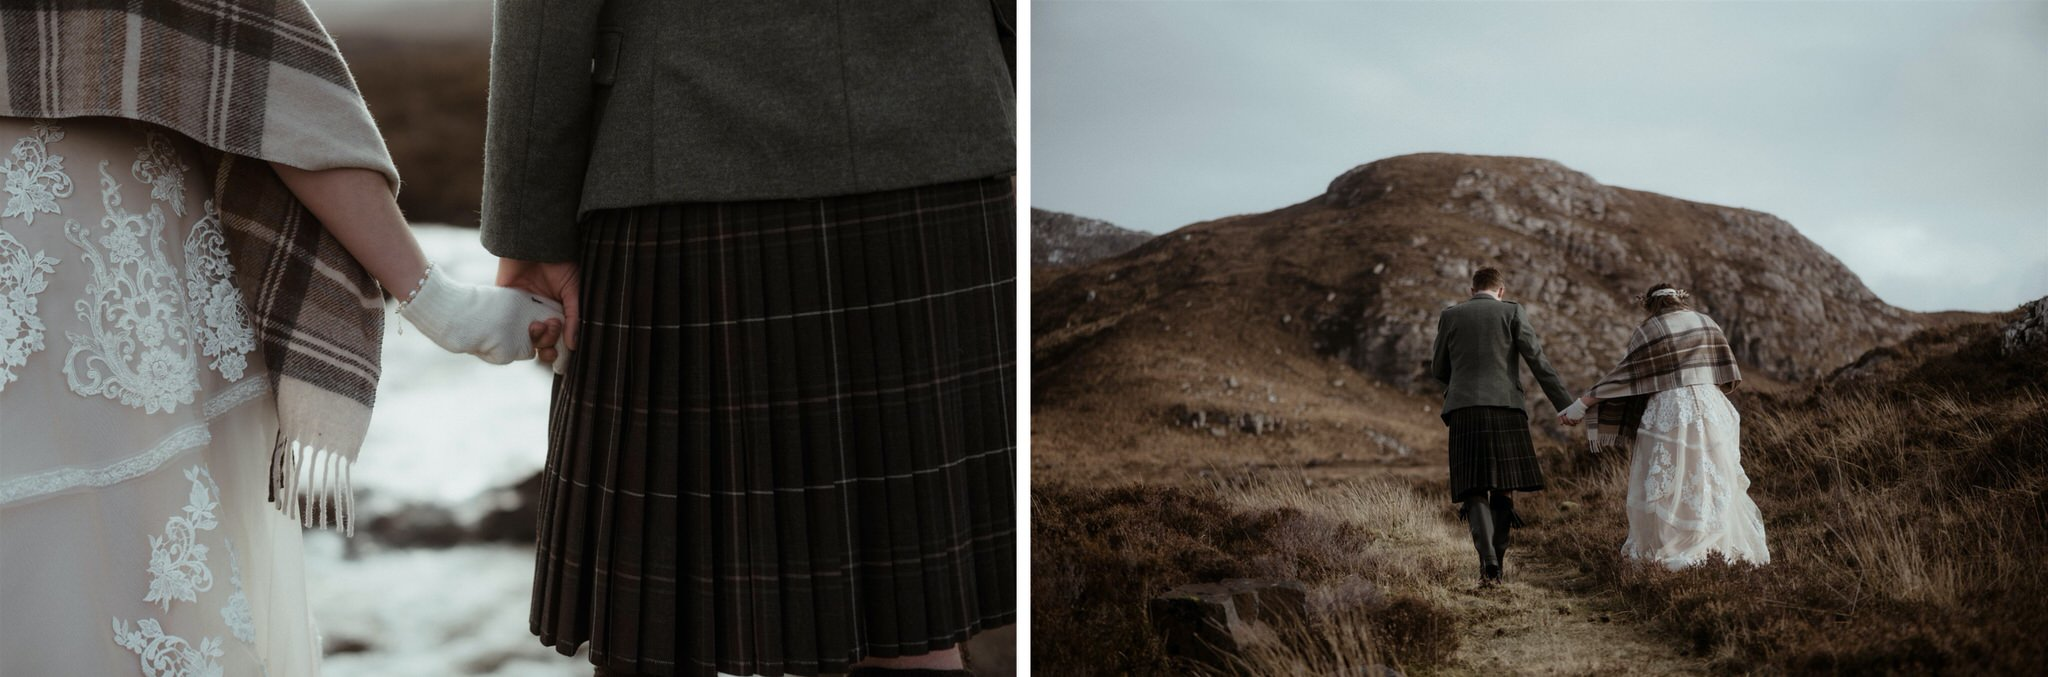 Bride and groom walking up a mountain in Assynt after an elopement wedding in Scotland_Bride and groom holding hands during a Scottish elopement wedding